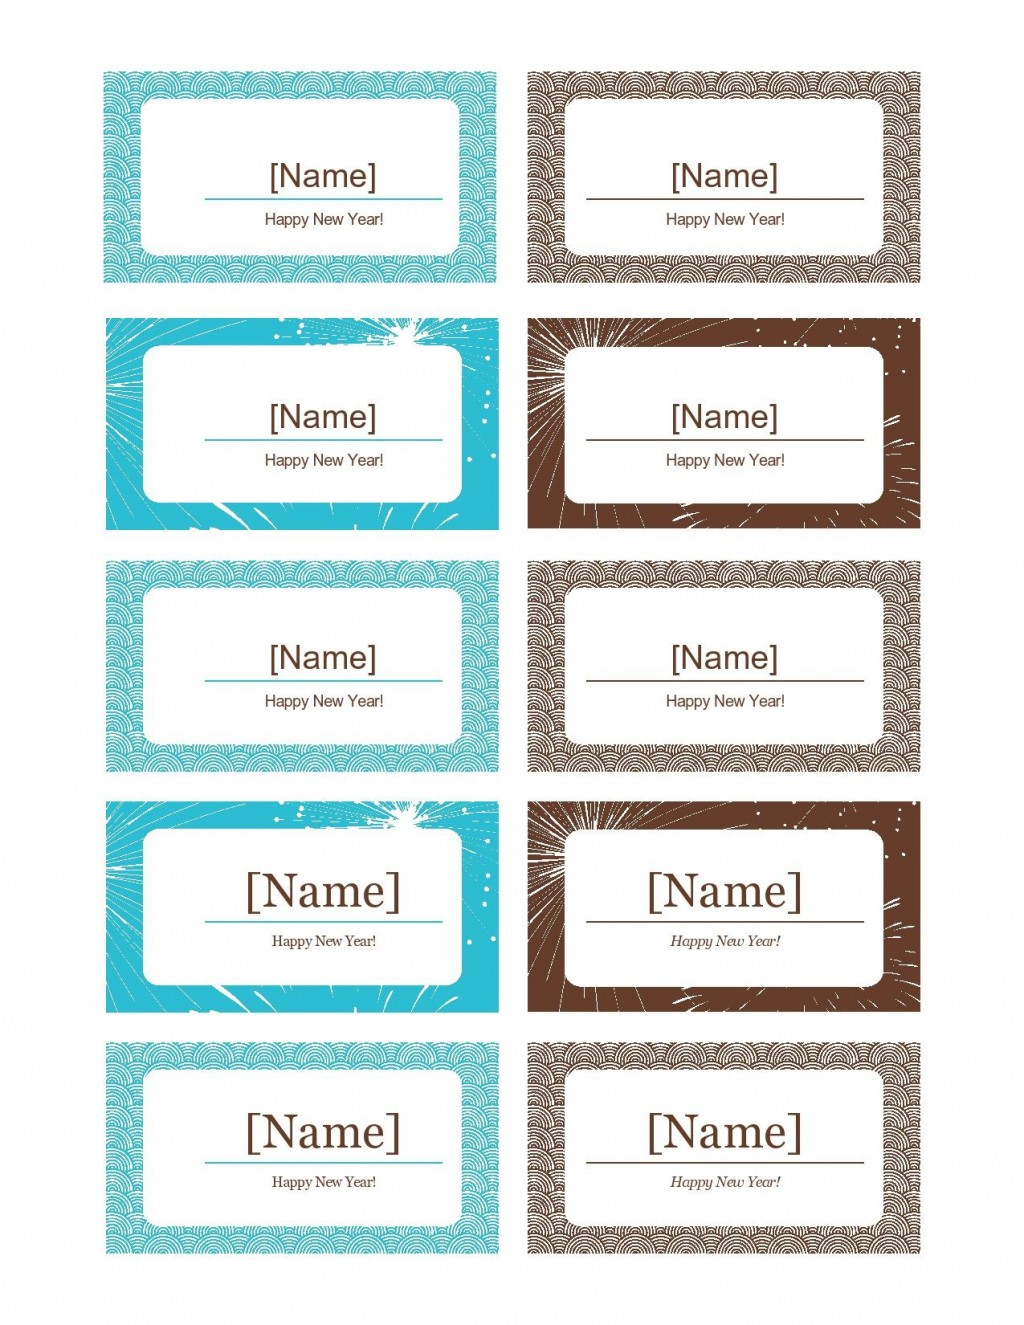 006 Stunning Name Place Card Template Free Download Picture  Psd VectorLarge